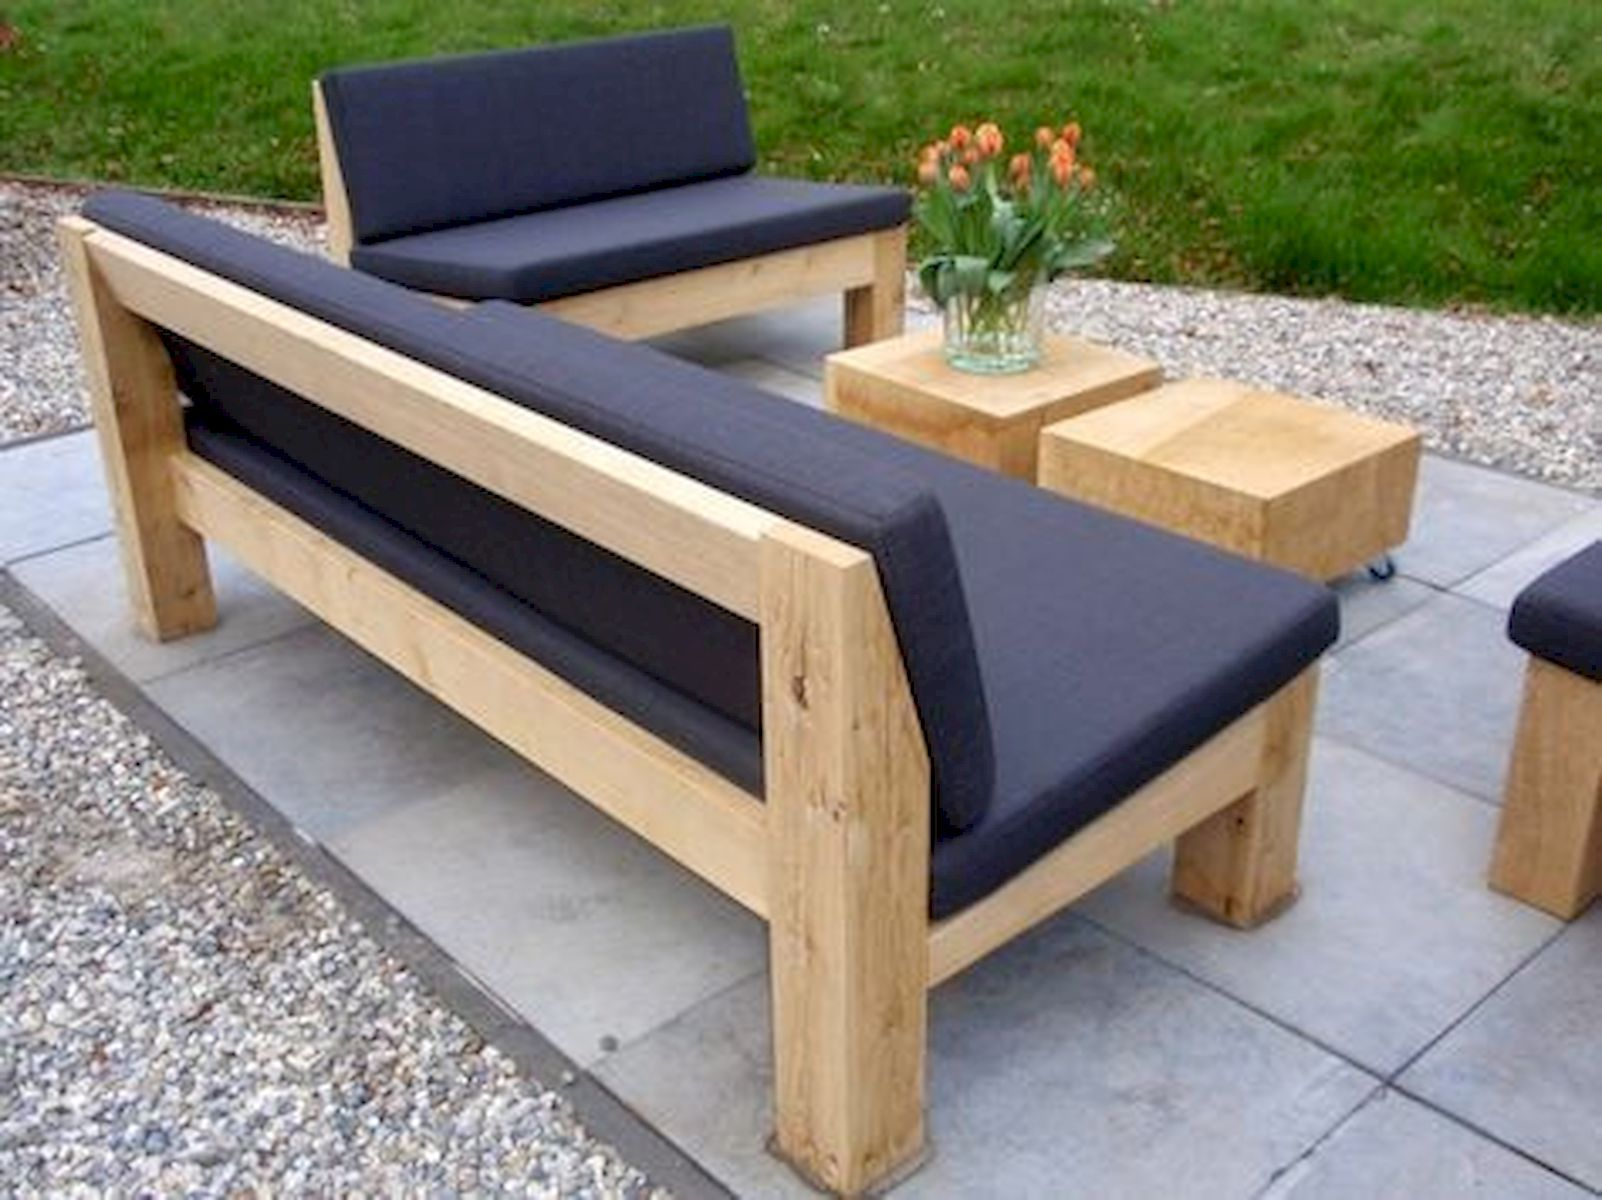 18 Amazing DIY Projects Outdoors Furniture Design Ideas  Canapé